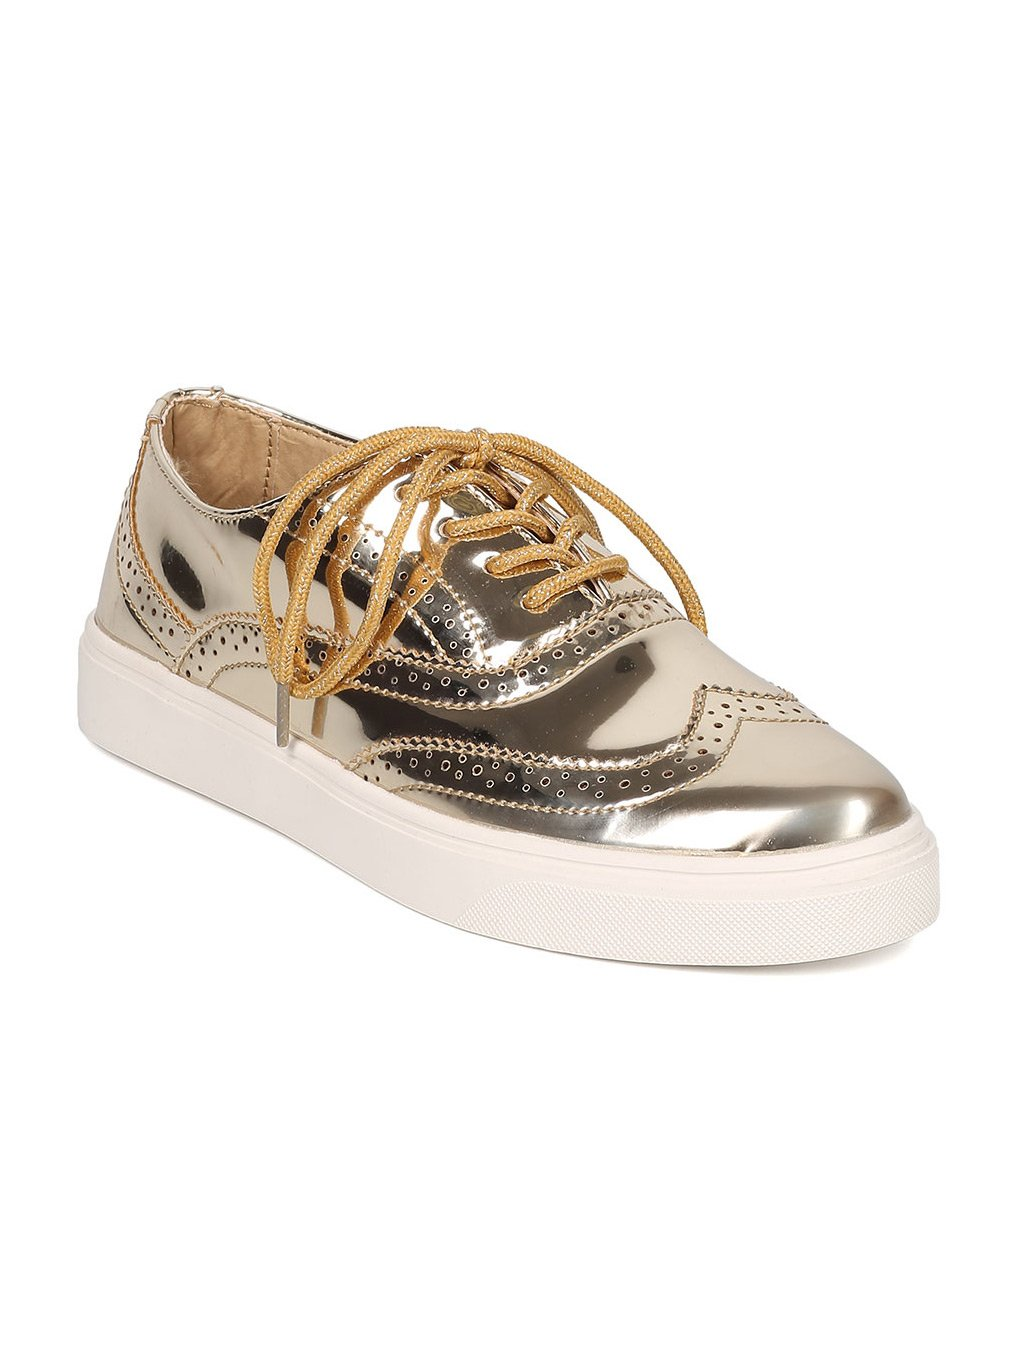 Women Metallic Leatherette Pointy Toe Oxford Sneaker GH34 - Gold (Size: 9.0)